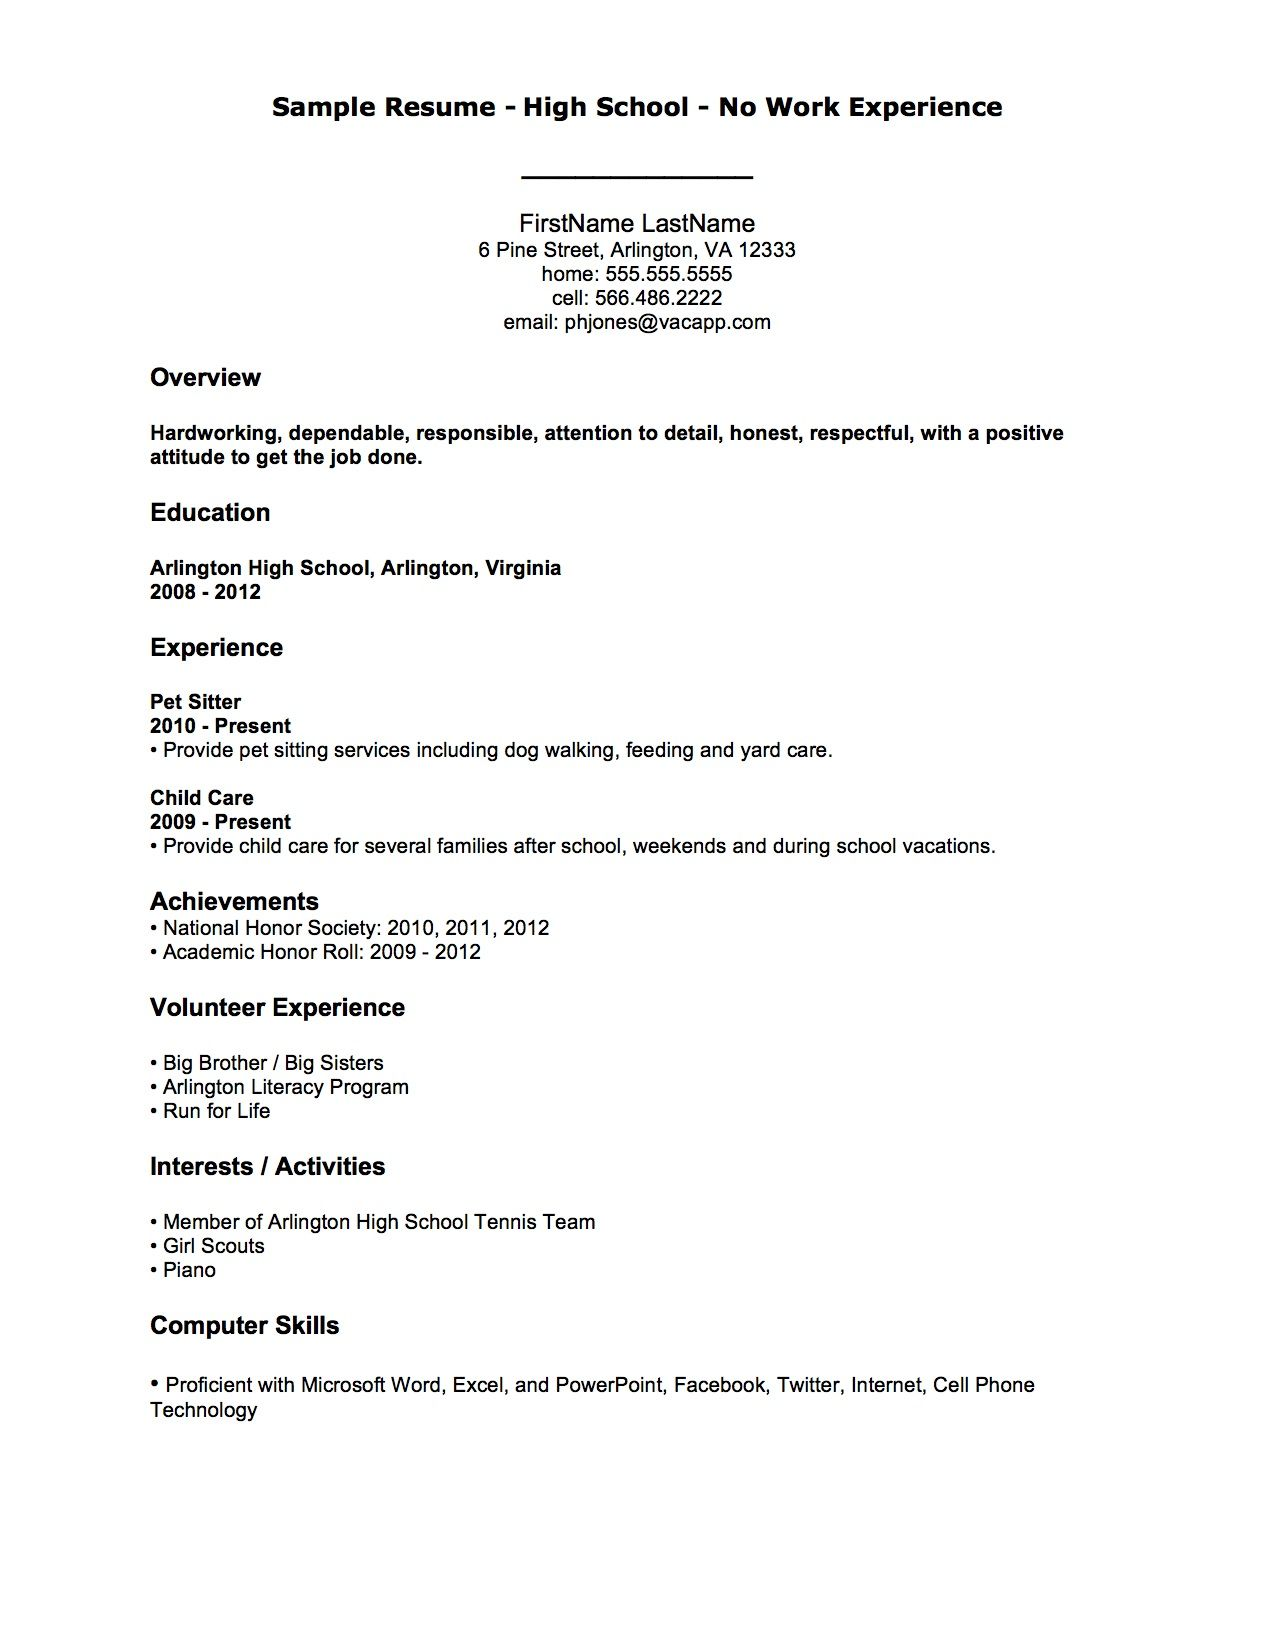 resume examples with no job experience - Job Resumes Examples